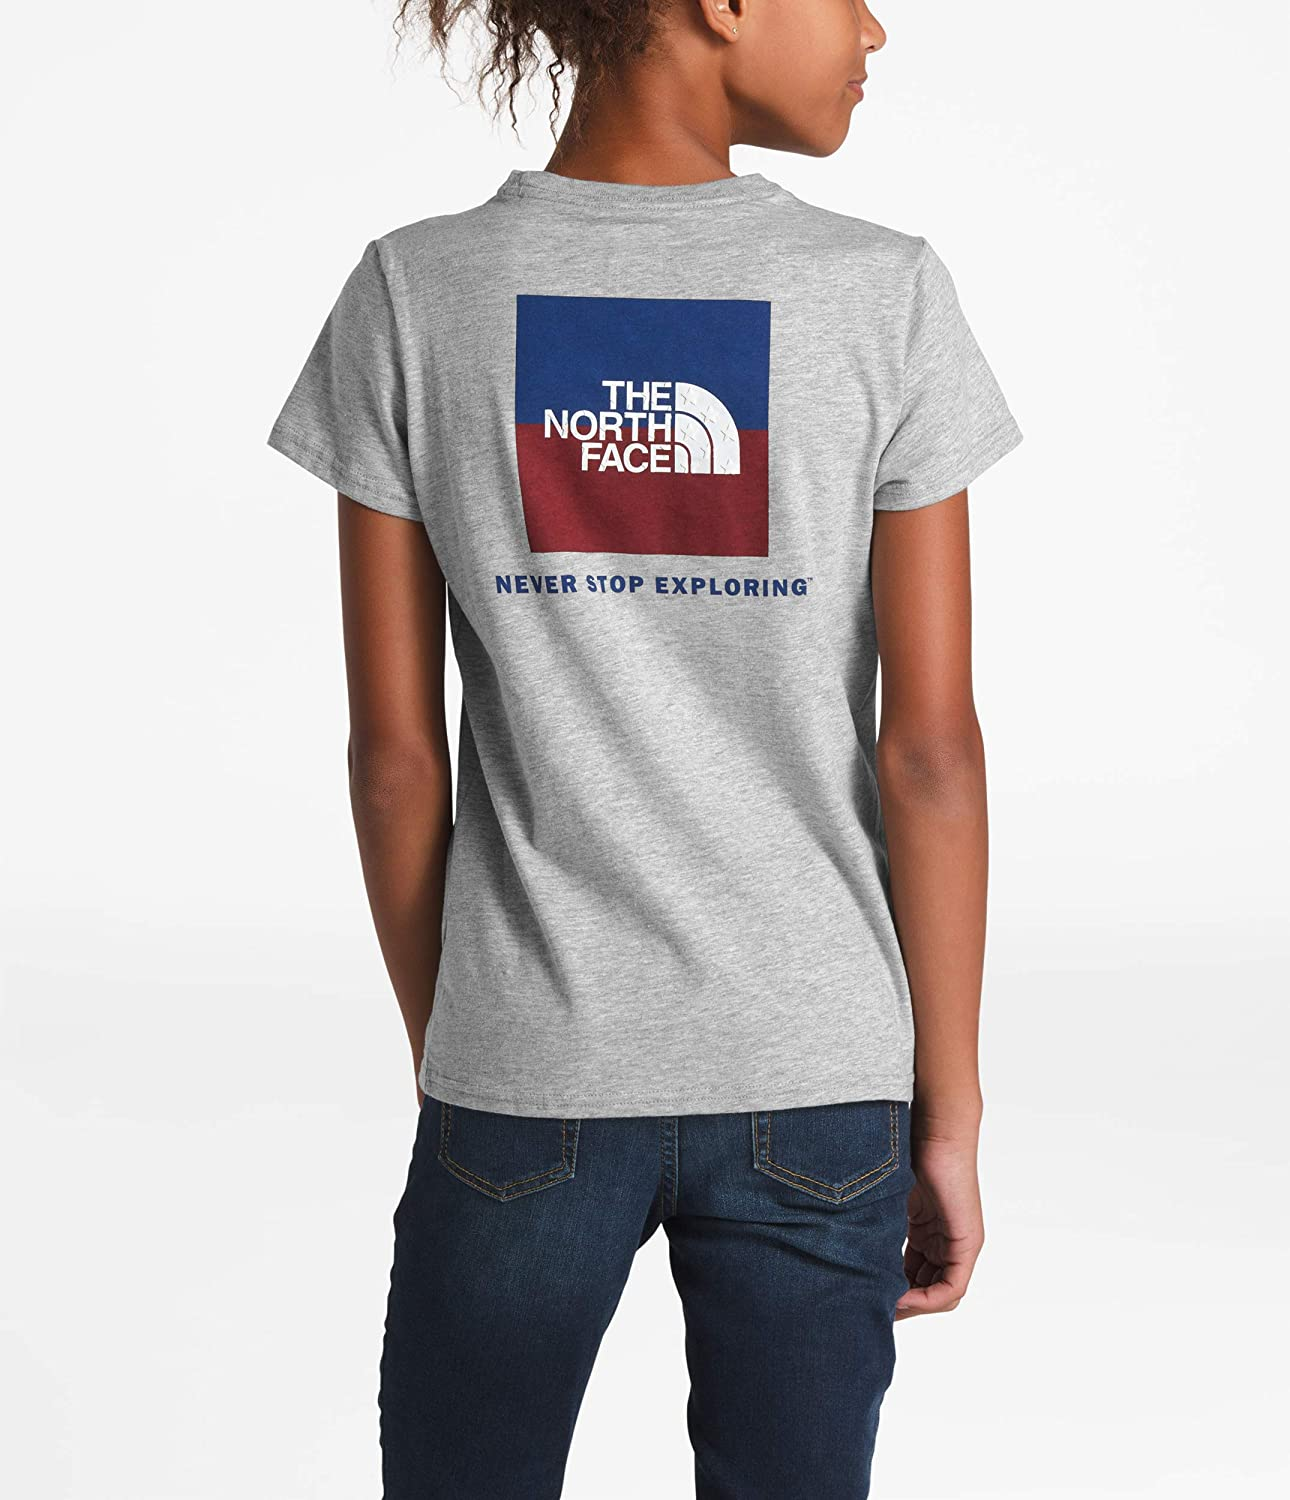 The North Face Girls Short Sleeve Graphic Tee